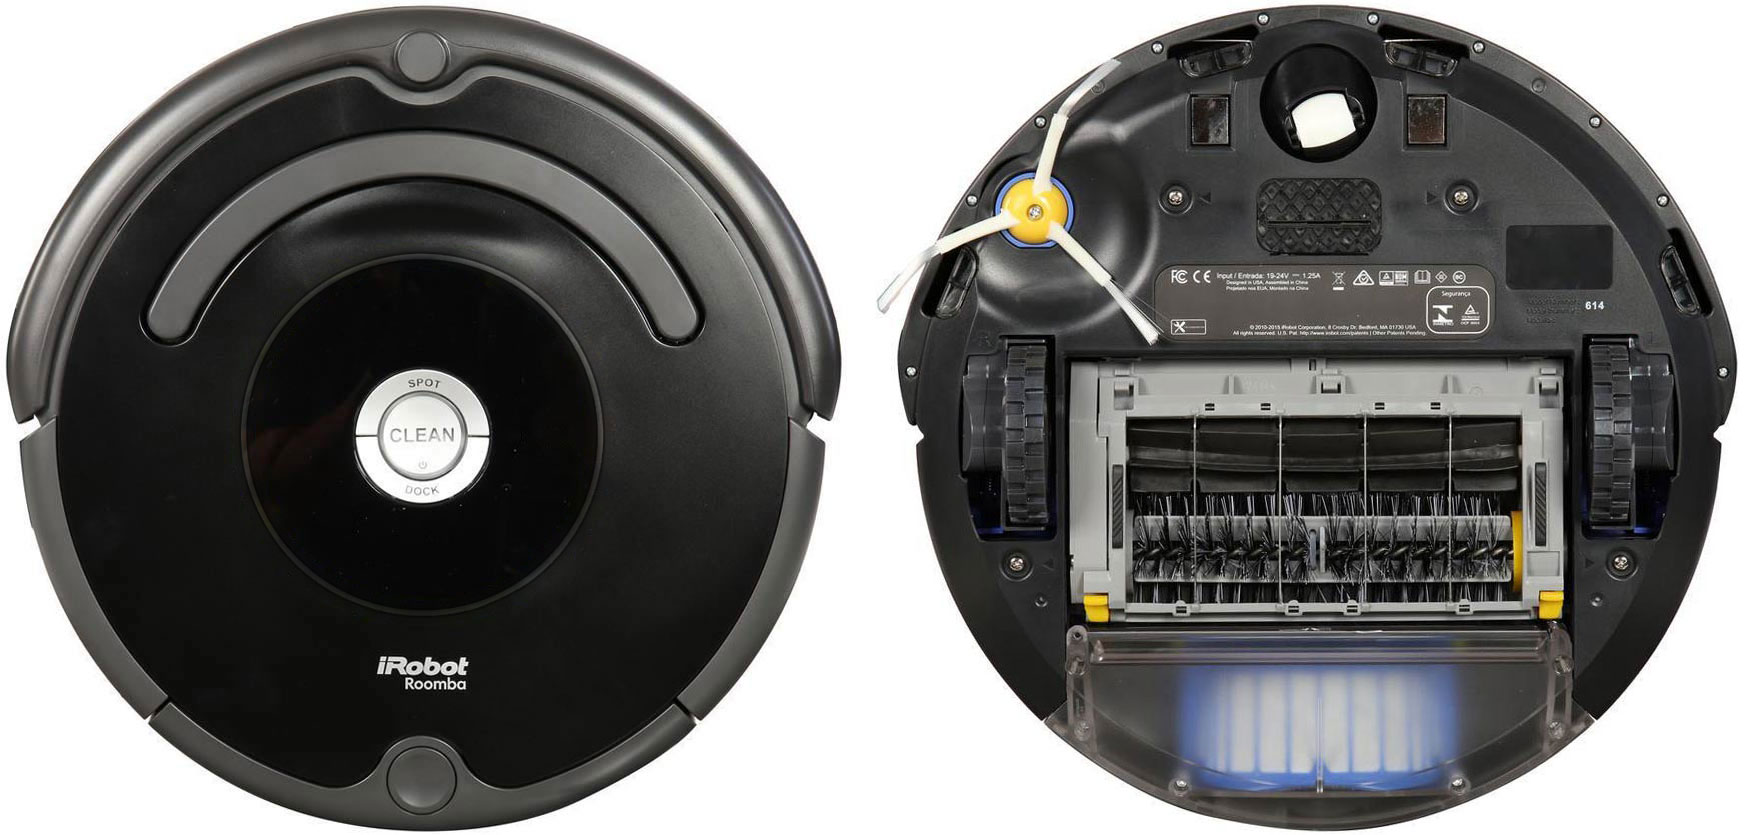 iRobot Roomba 614 top and bottom